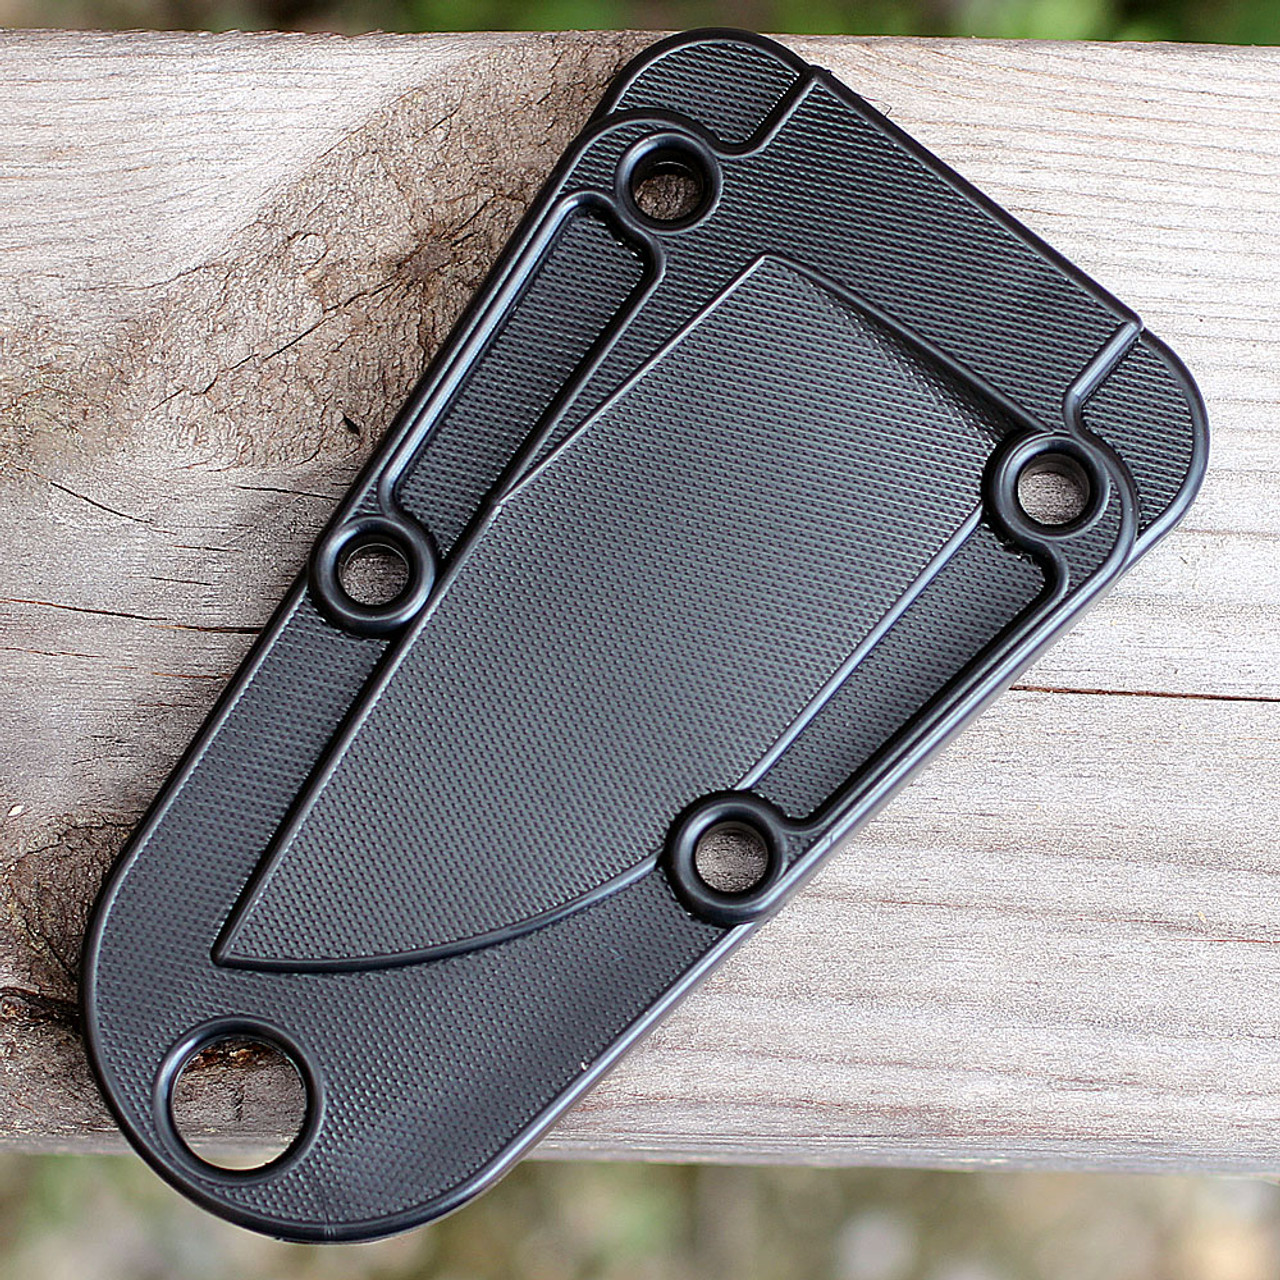 ESEE IZULA Knife, Black, Concealed Carry Knife, With Clip Plate